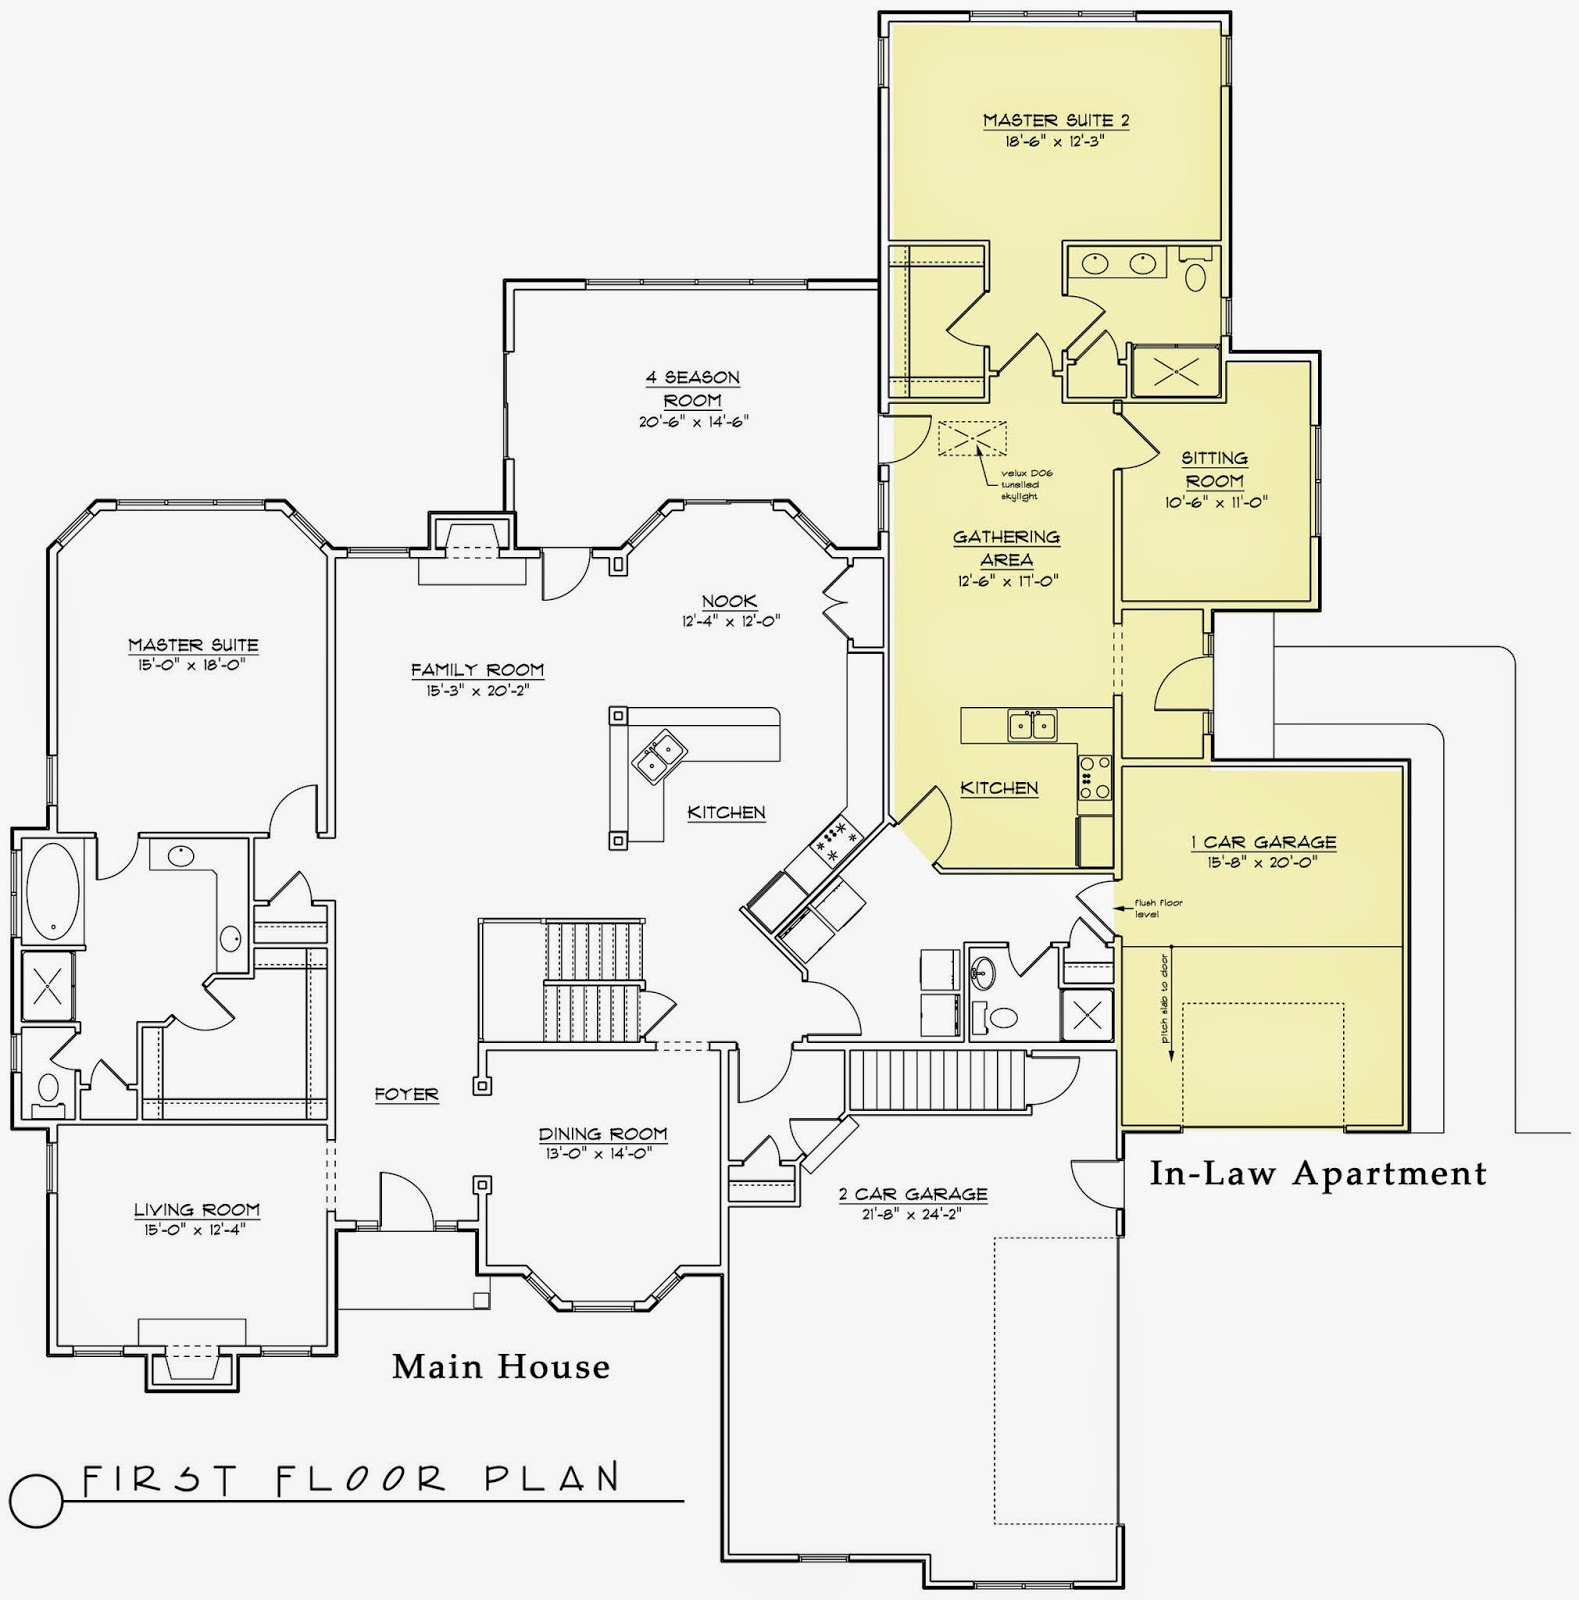 Hodorowski homes rising trend for in law apartments for Floor plans with inlaw apartment